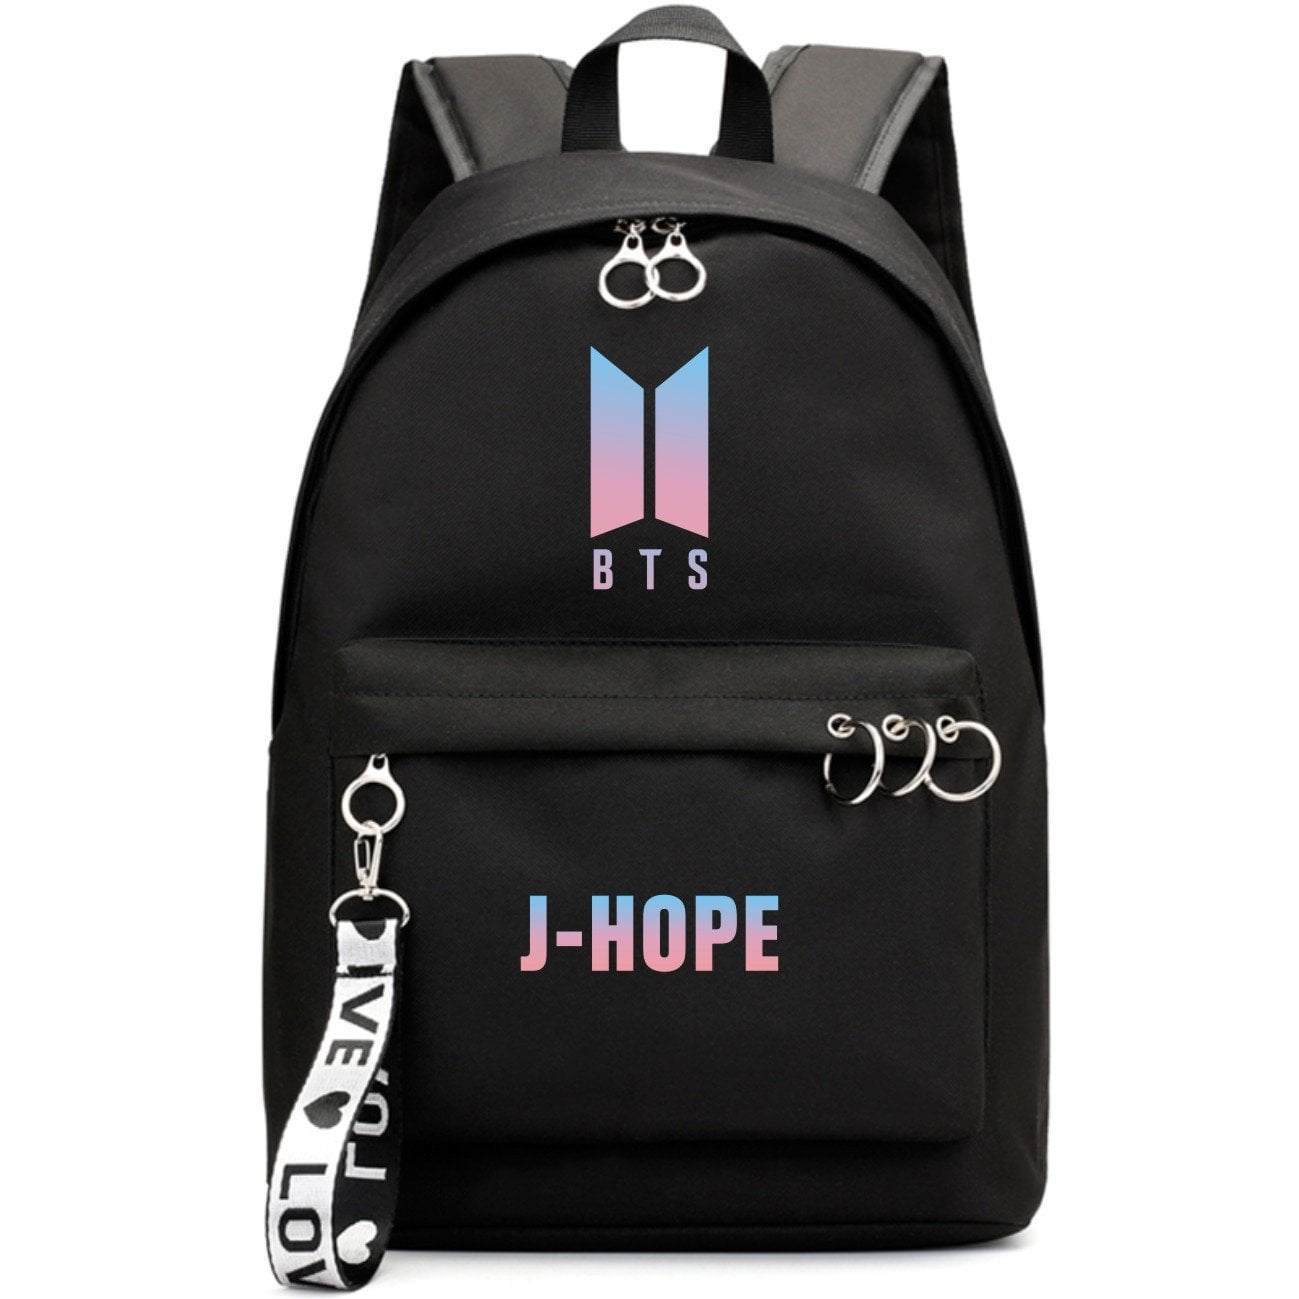 BTS New Logo Large Capacity Backpack / School Bag with Silver Rings in 2 Colours  583071224455#3925845045036